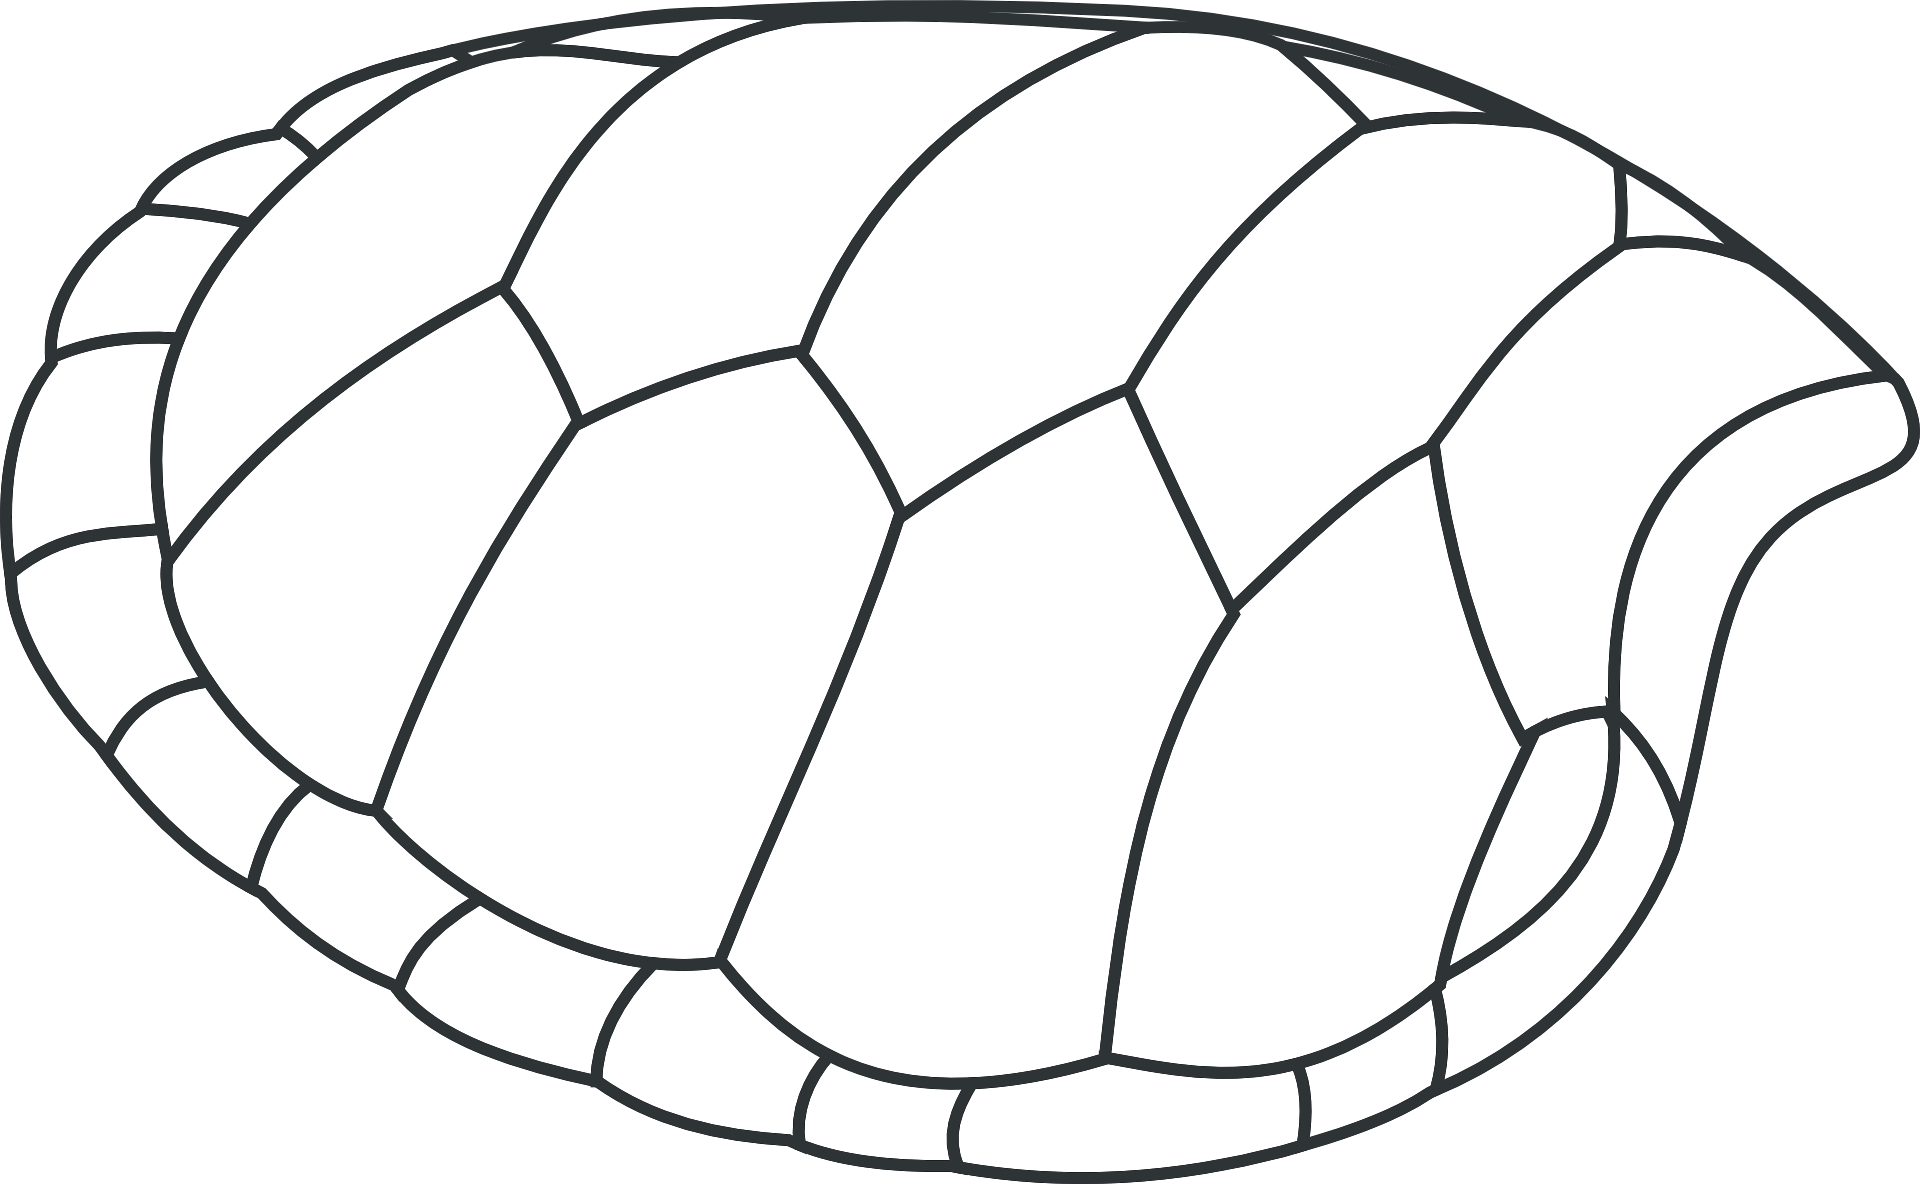 Https Pixabay Com Get 55e4d5464e4fad00f5d8992cc02d3f781237dbf85257714870287dd2954f 1920 Png Turtle Shell Shell Drawing Clip Art